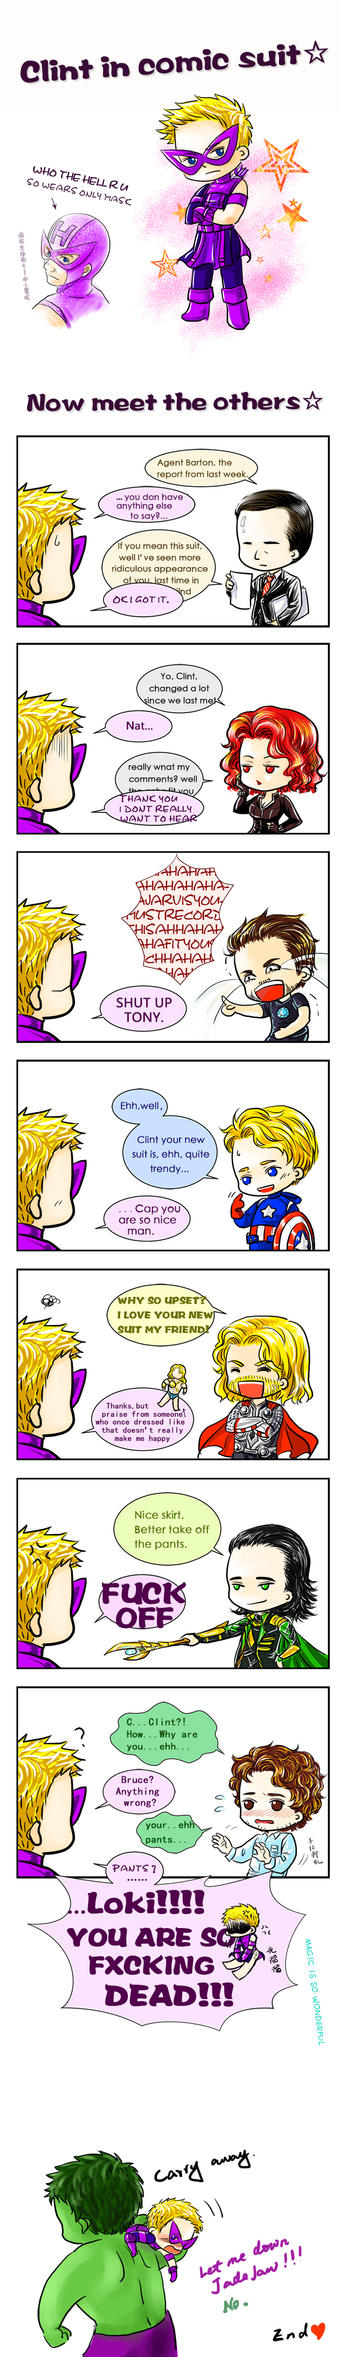 Clint (JR) in comic suit by kingbirdkathy